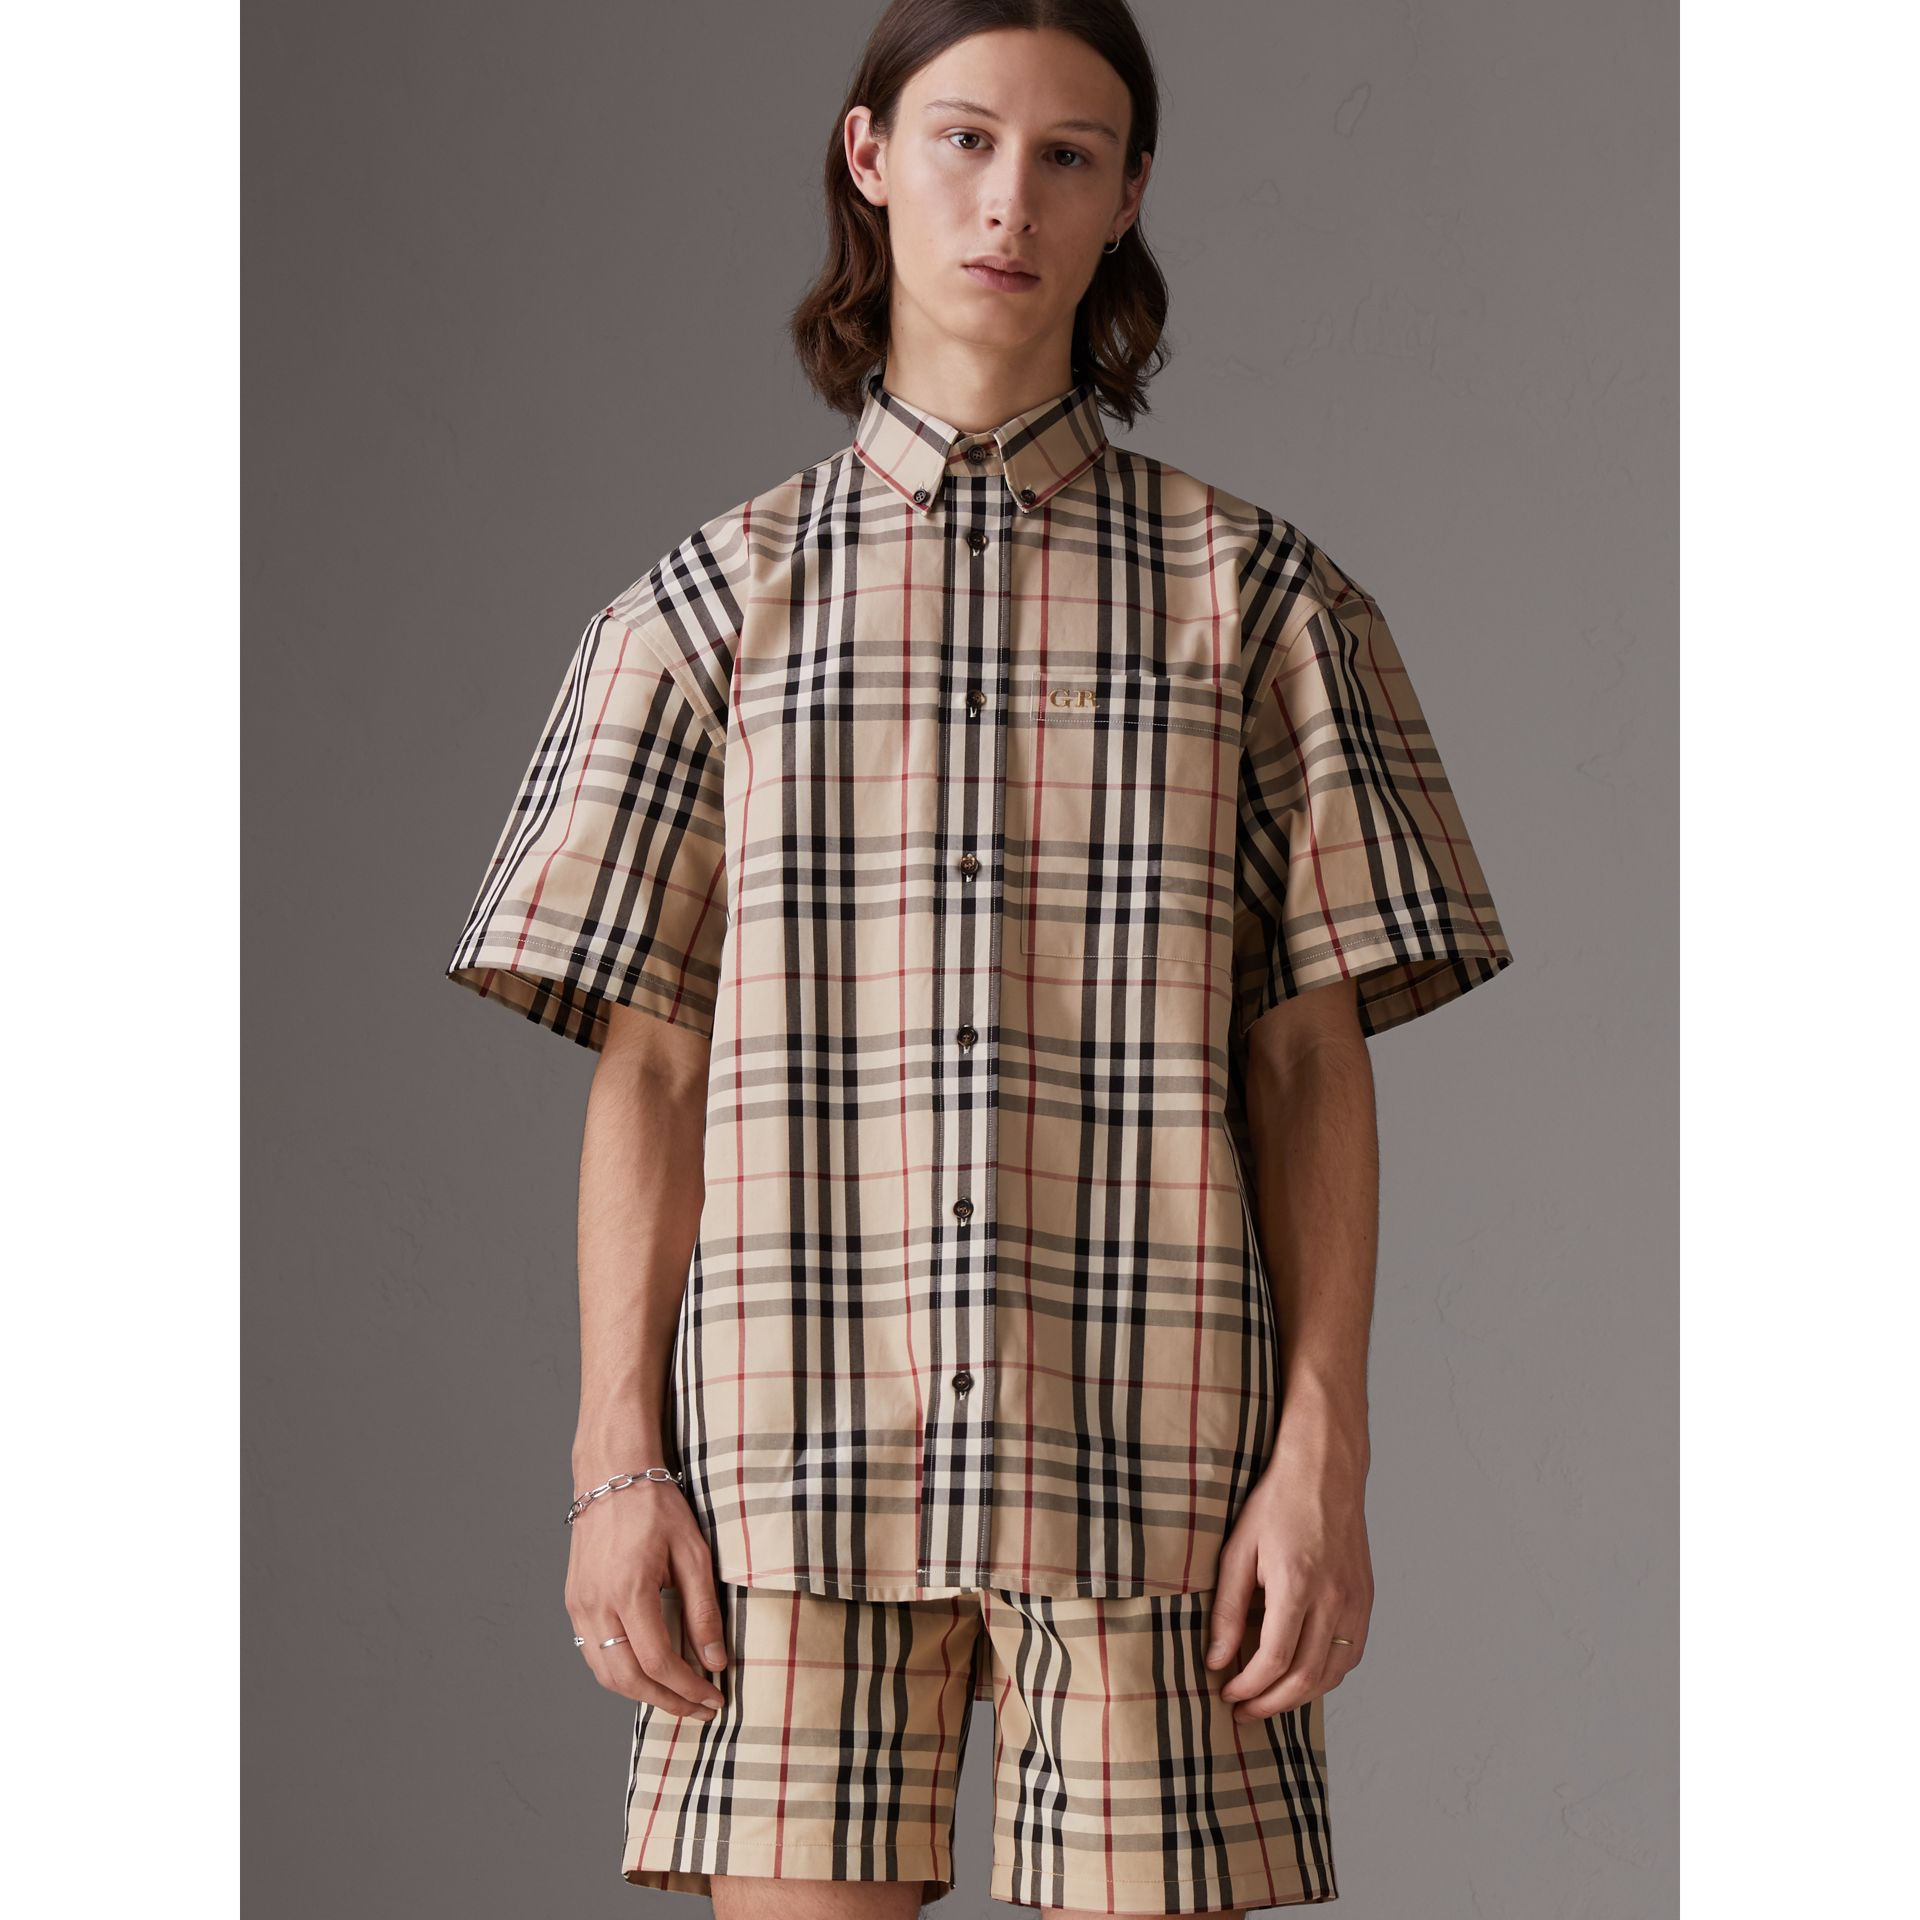 Gosha x Burberry Short-sleeve Check Shirt in Honey - Men | Burberry United States - gallery image 0